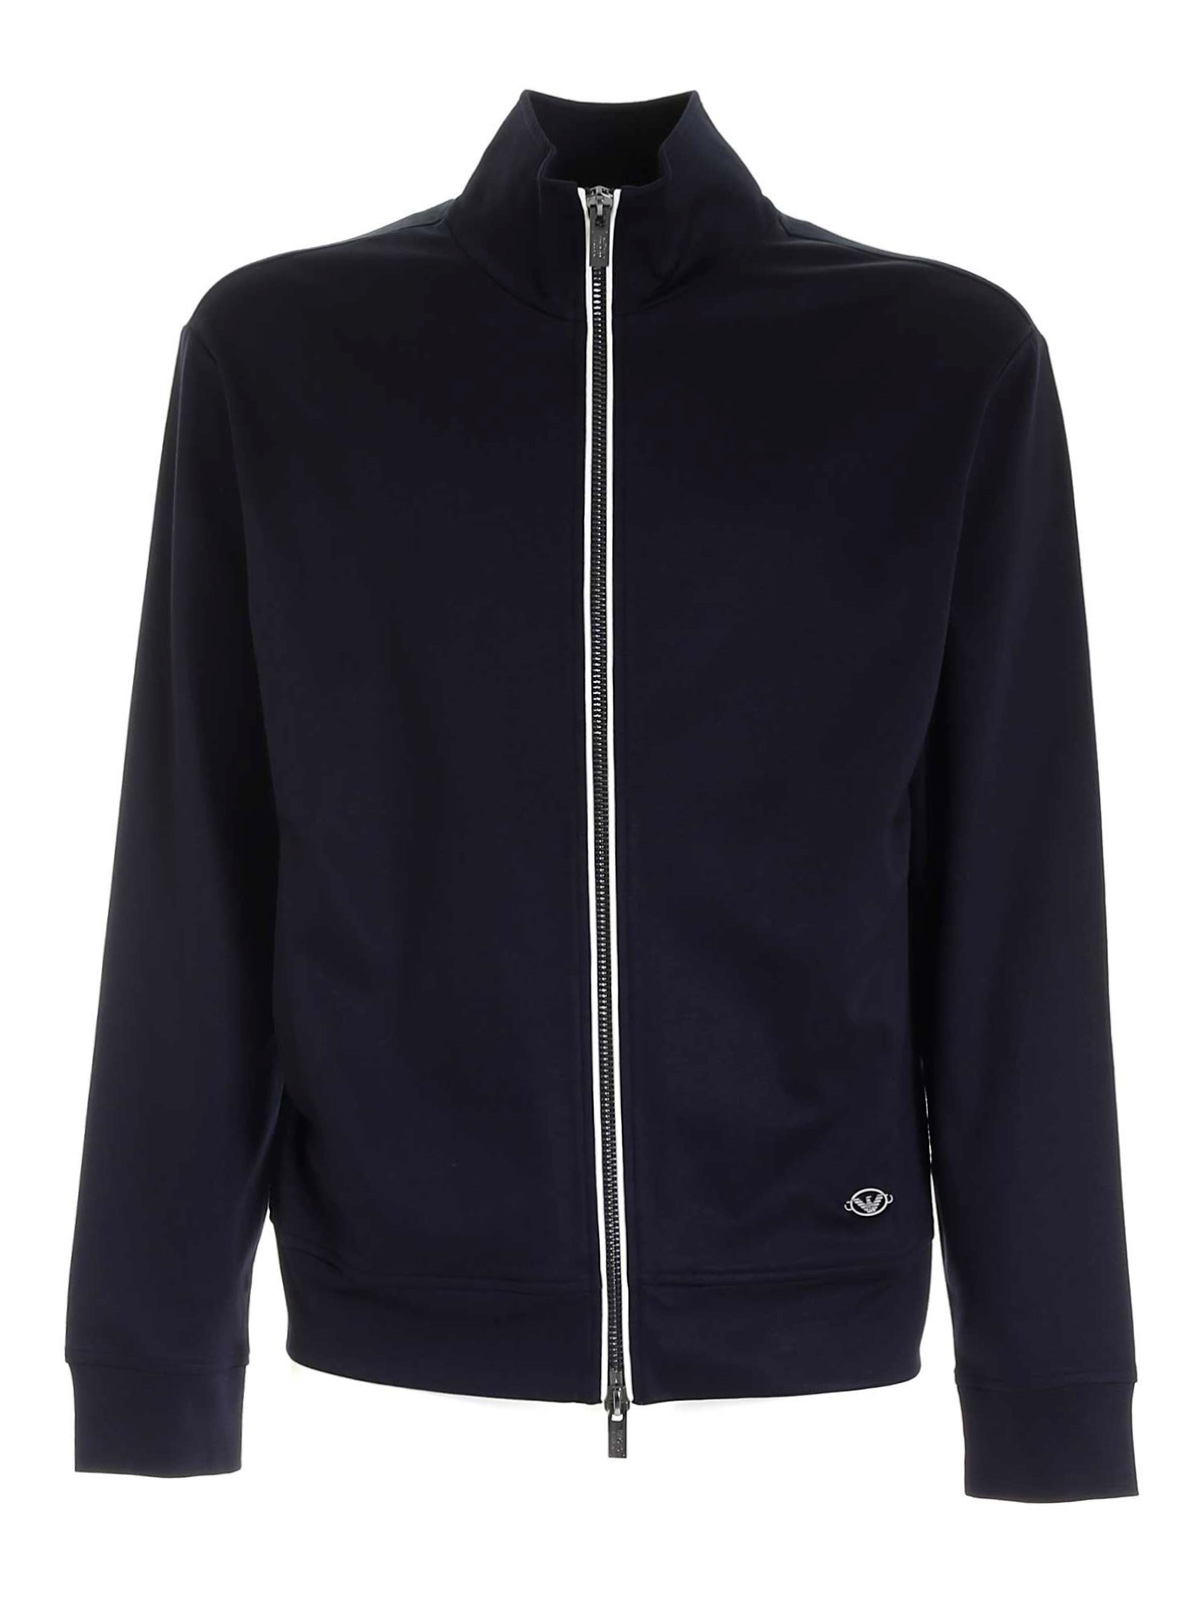 Picture of EMPORIO ARMANI | Men's Full Zip Viscose Sweatshirt